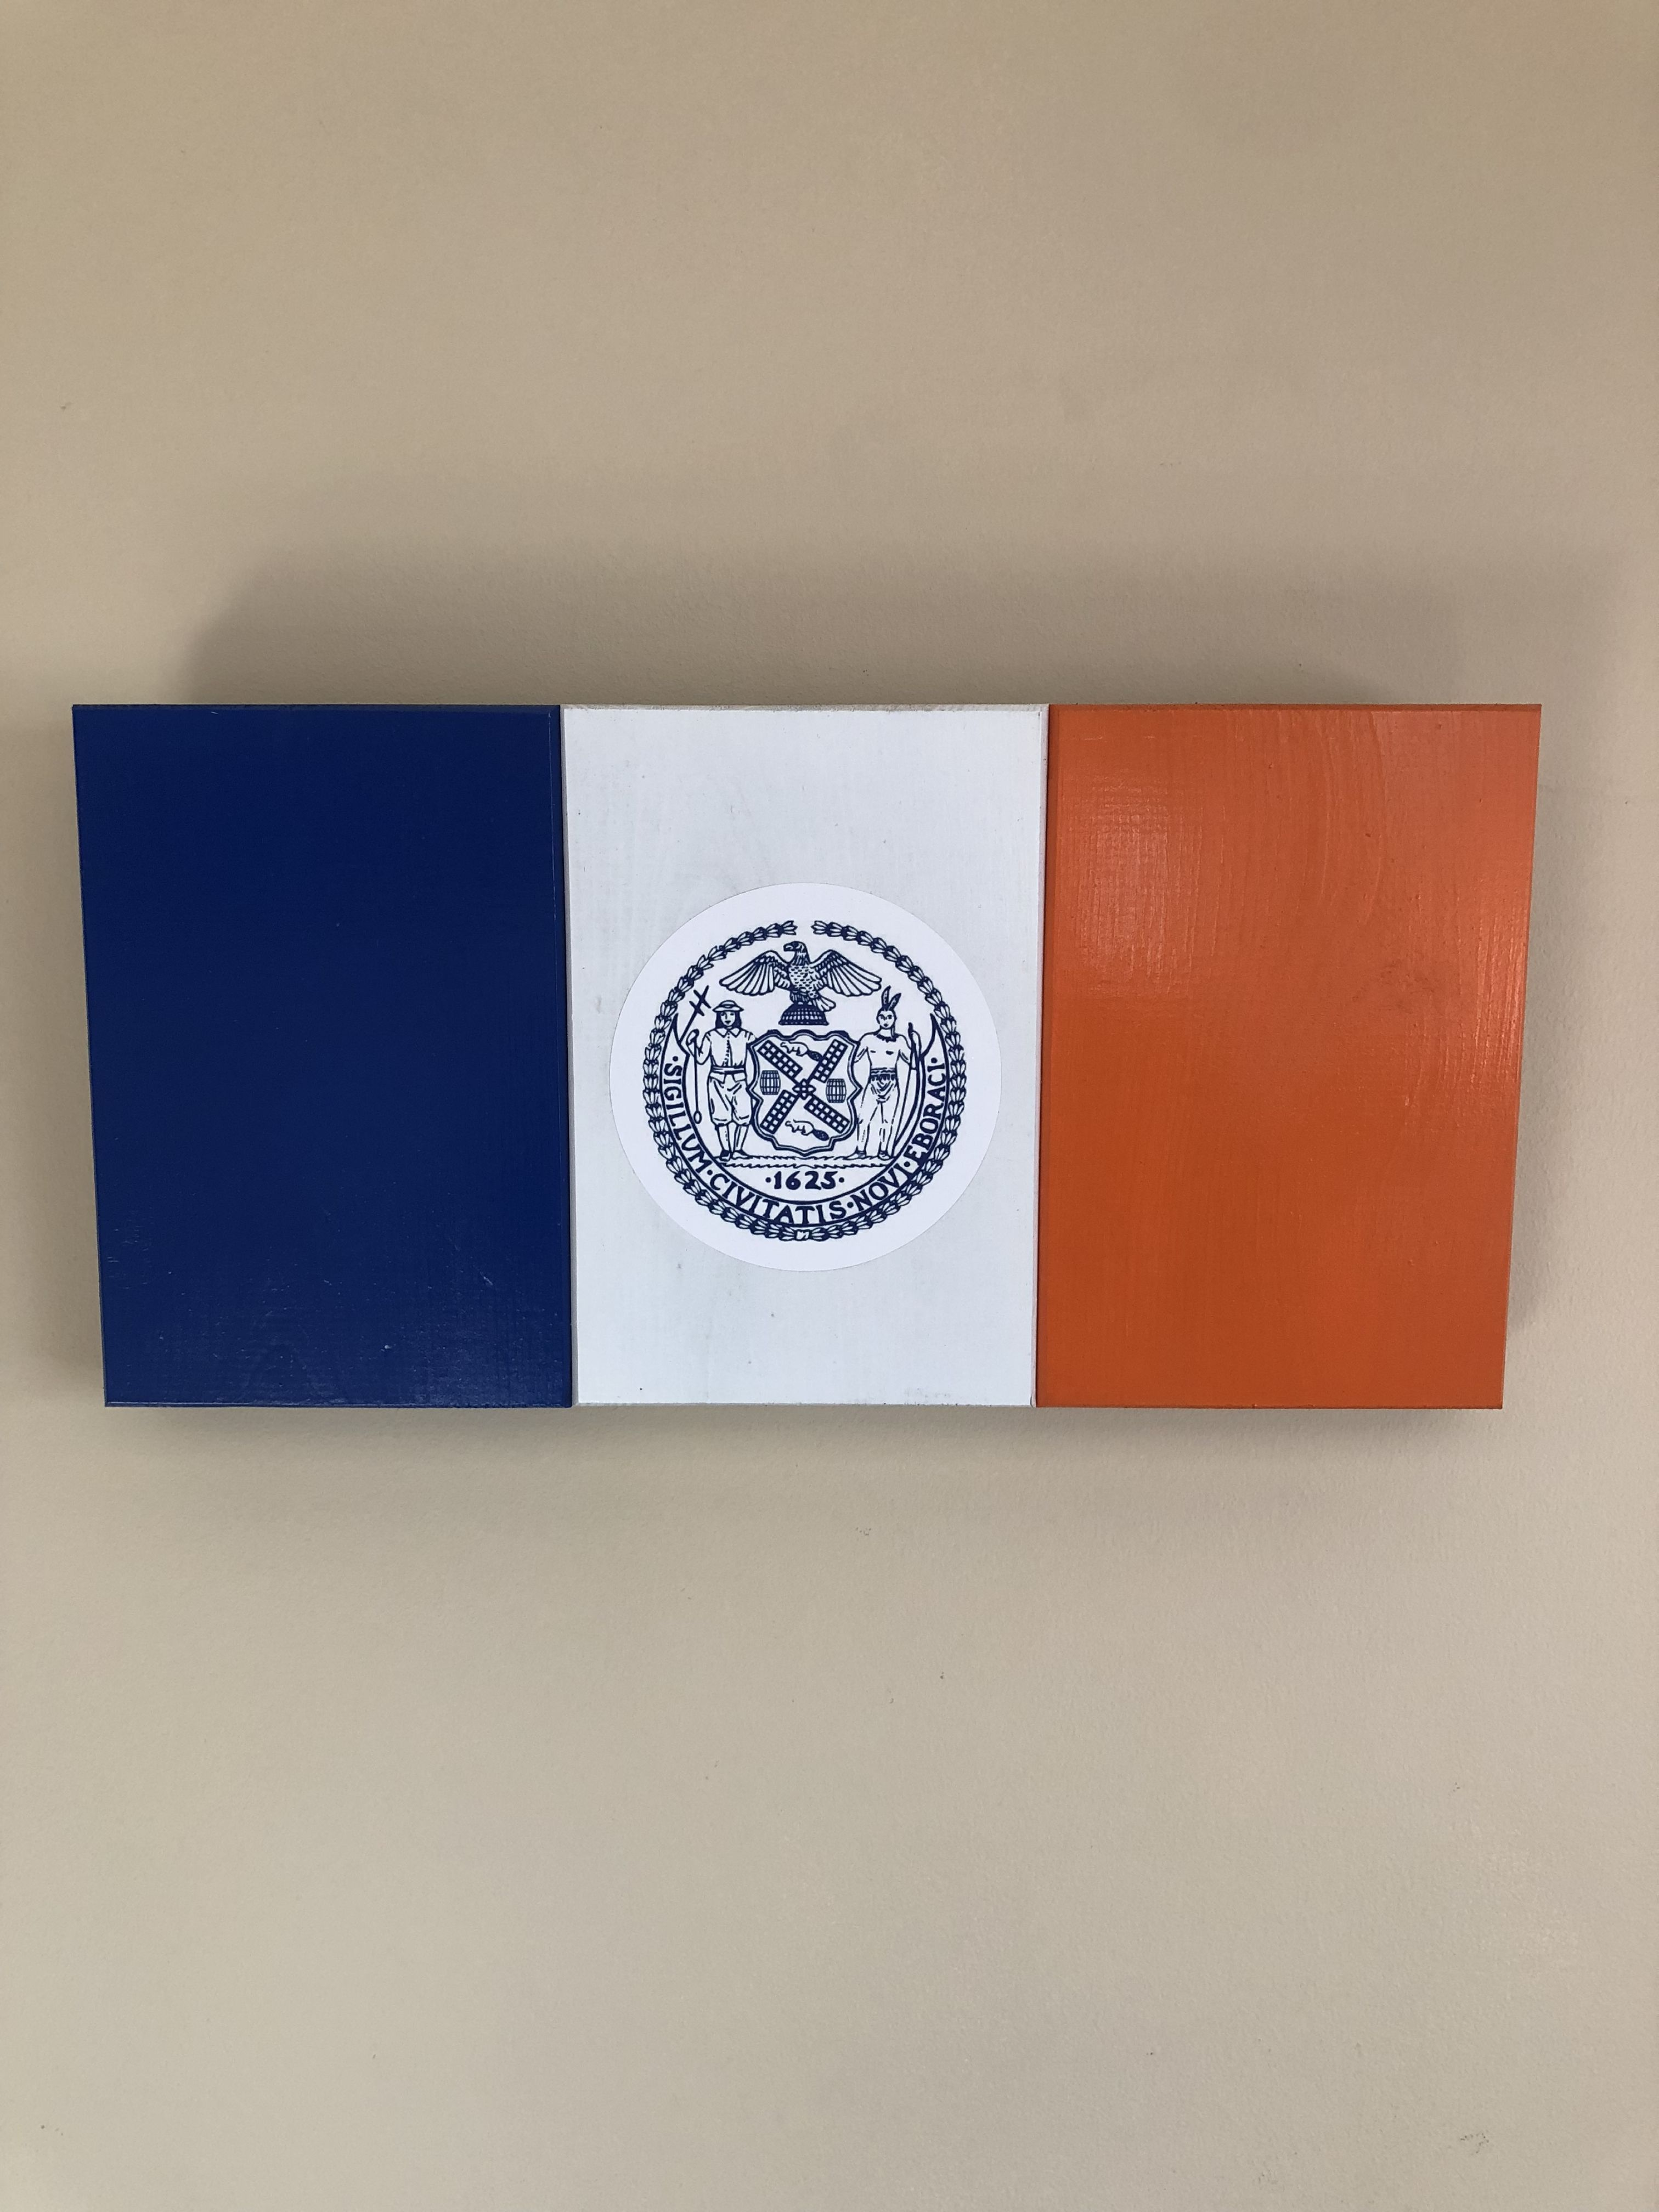 New York City Custom Flag Custom Flags Small Flags Unique Items Products